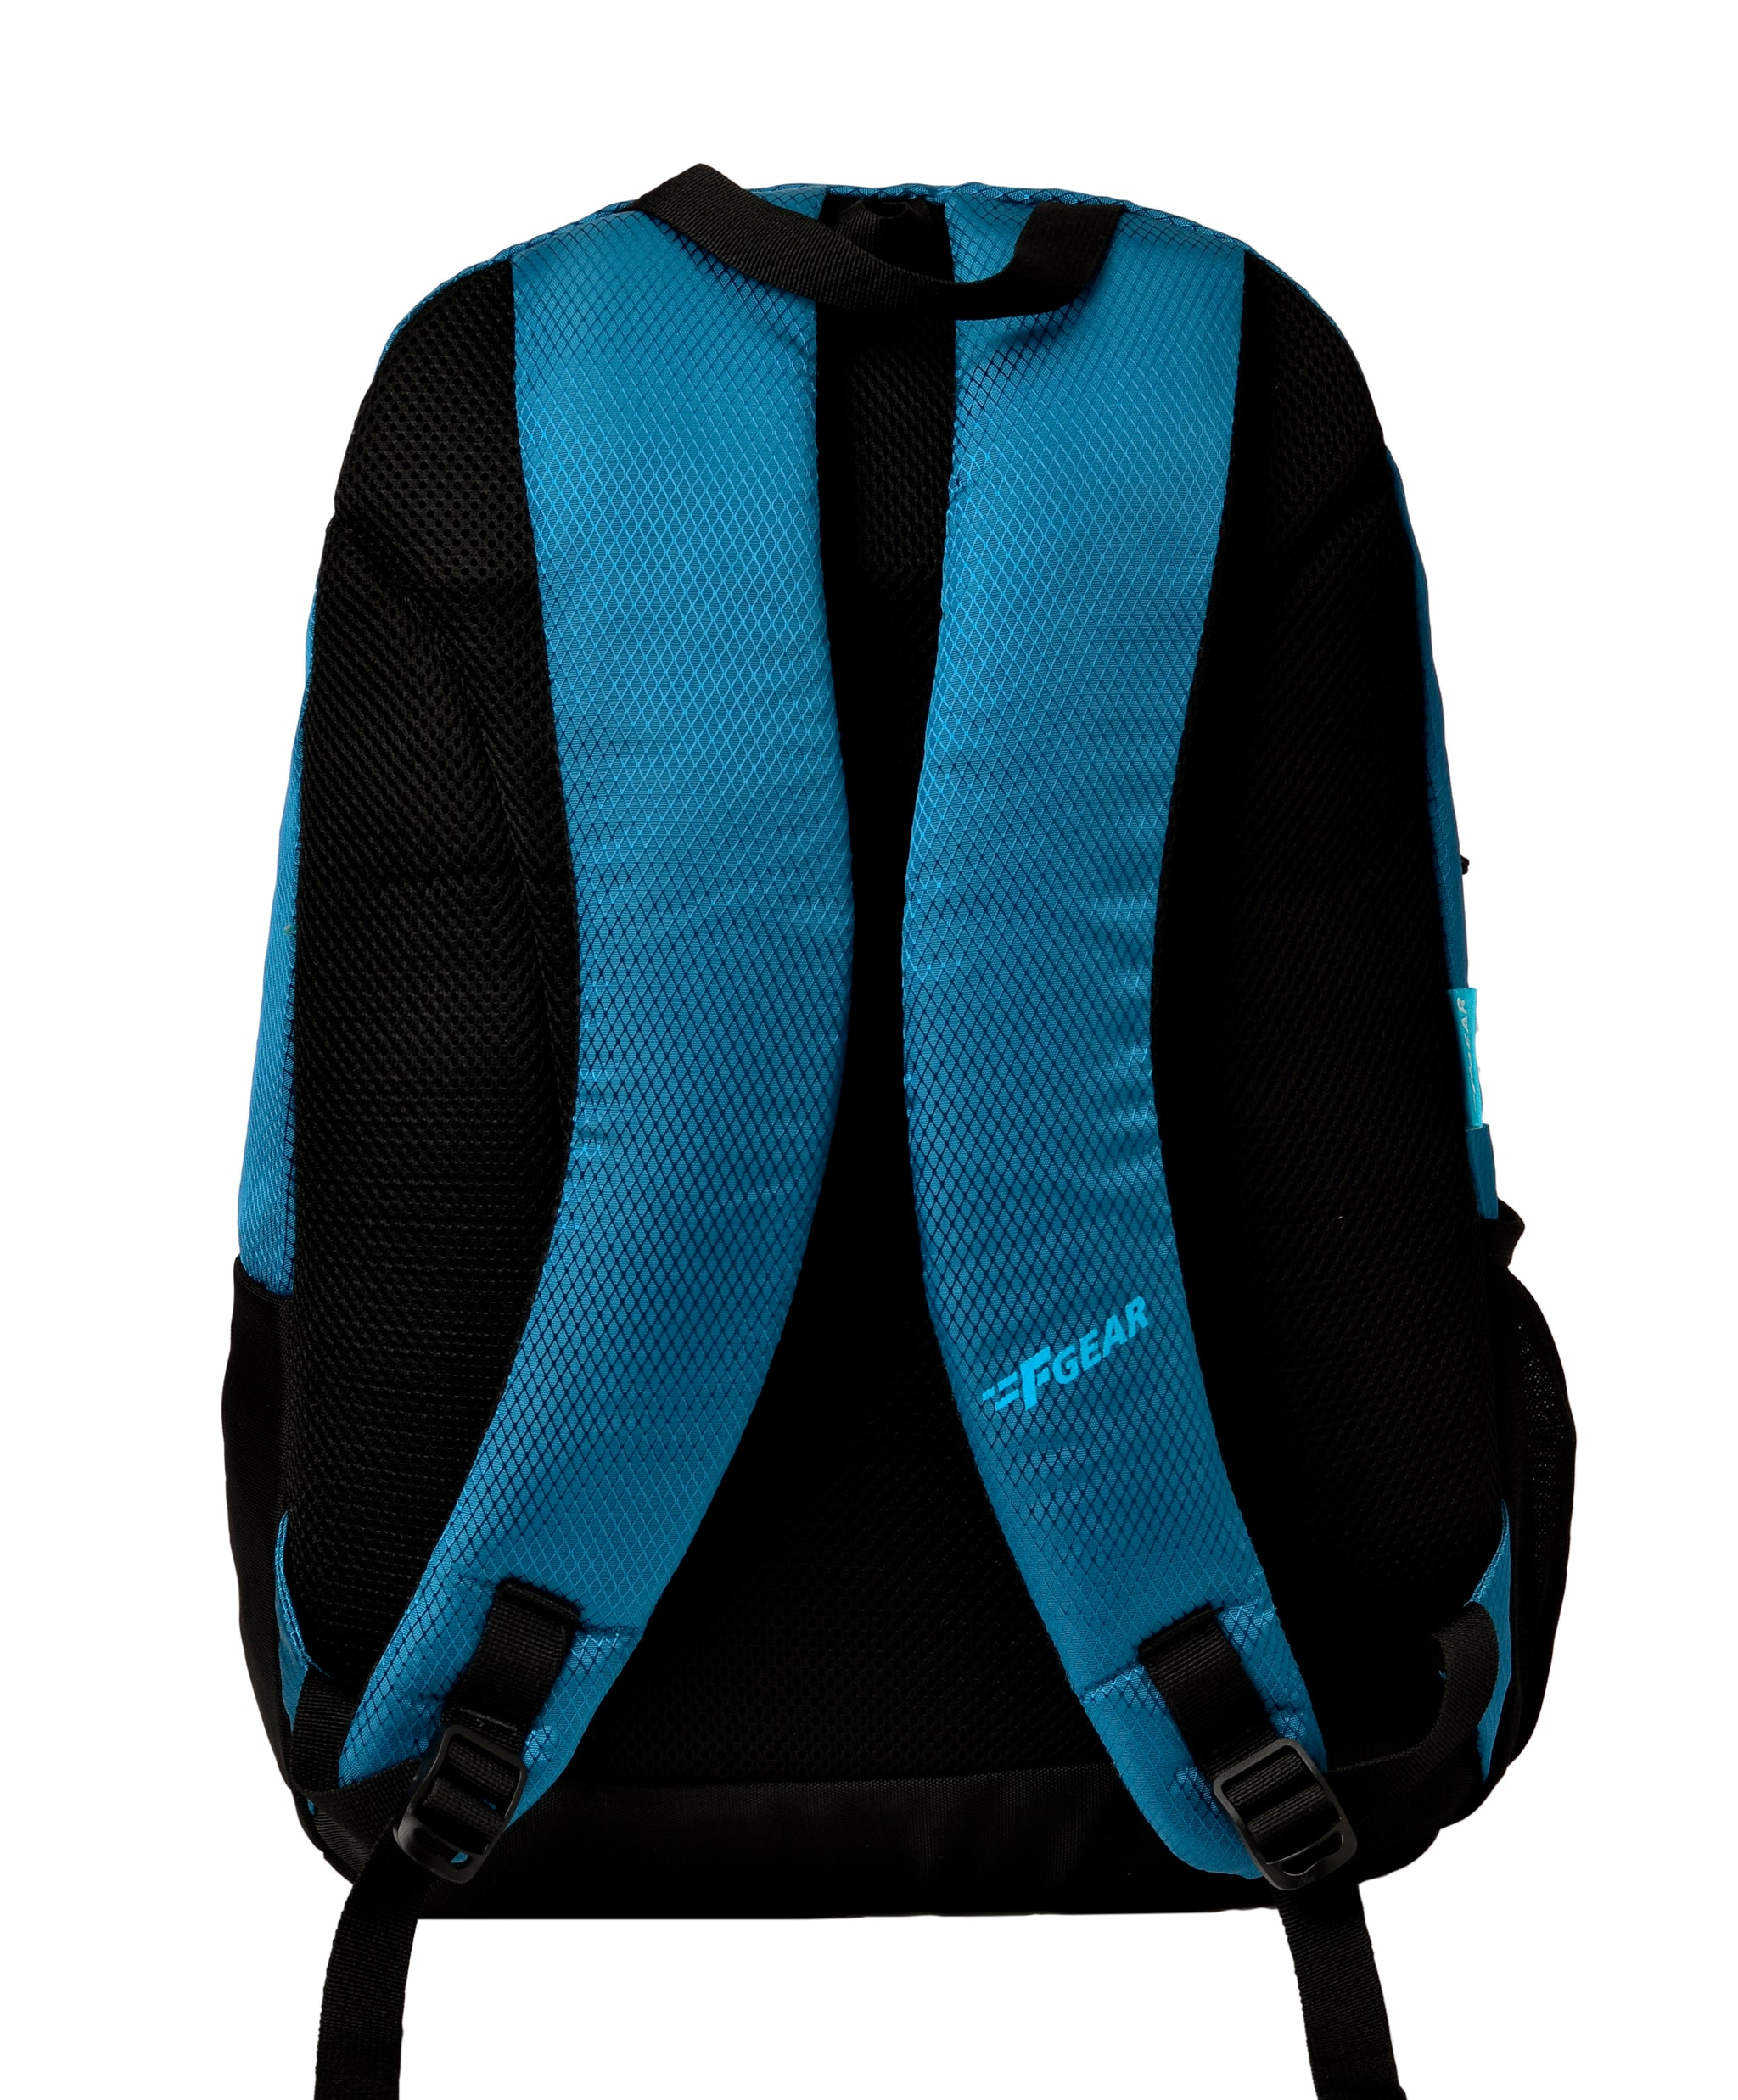 F Gear Borealis Marine Blue Diamond, Black Guc 25 Liters Backpack (2968)